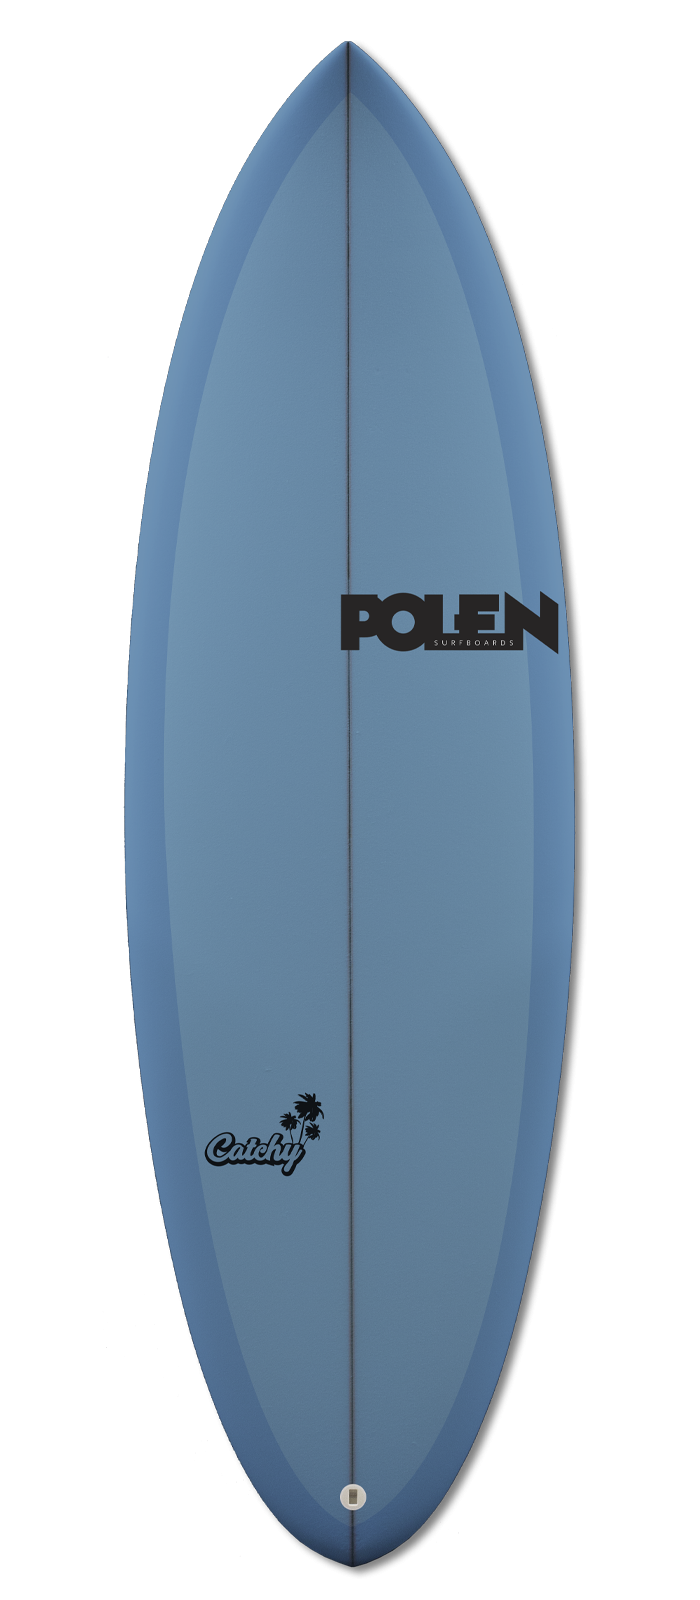 CATCHY surfboard model deck